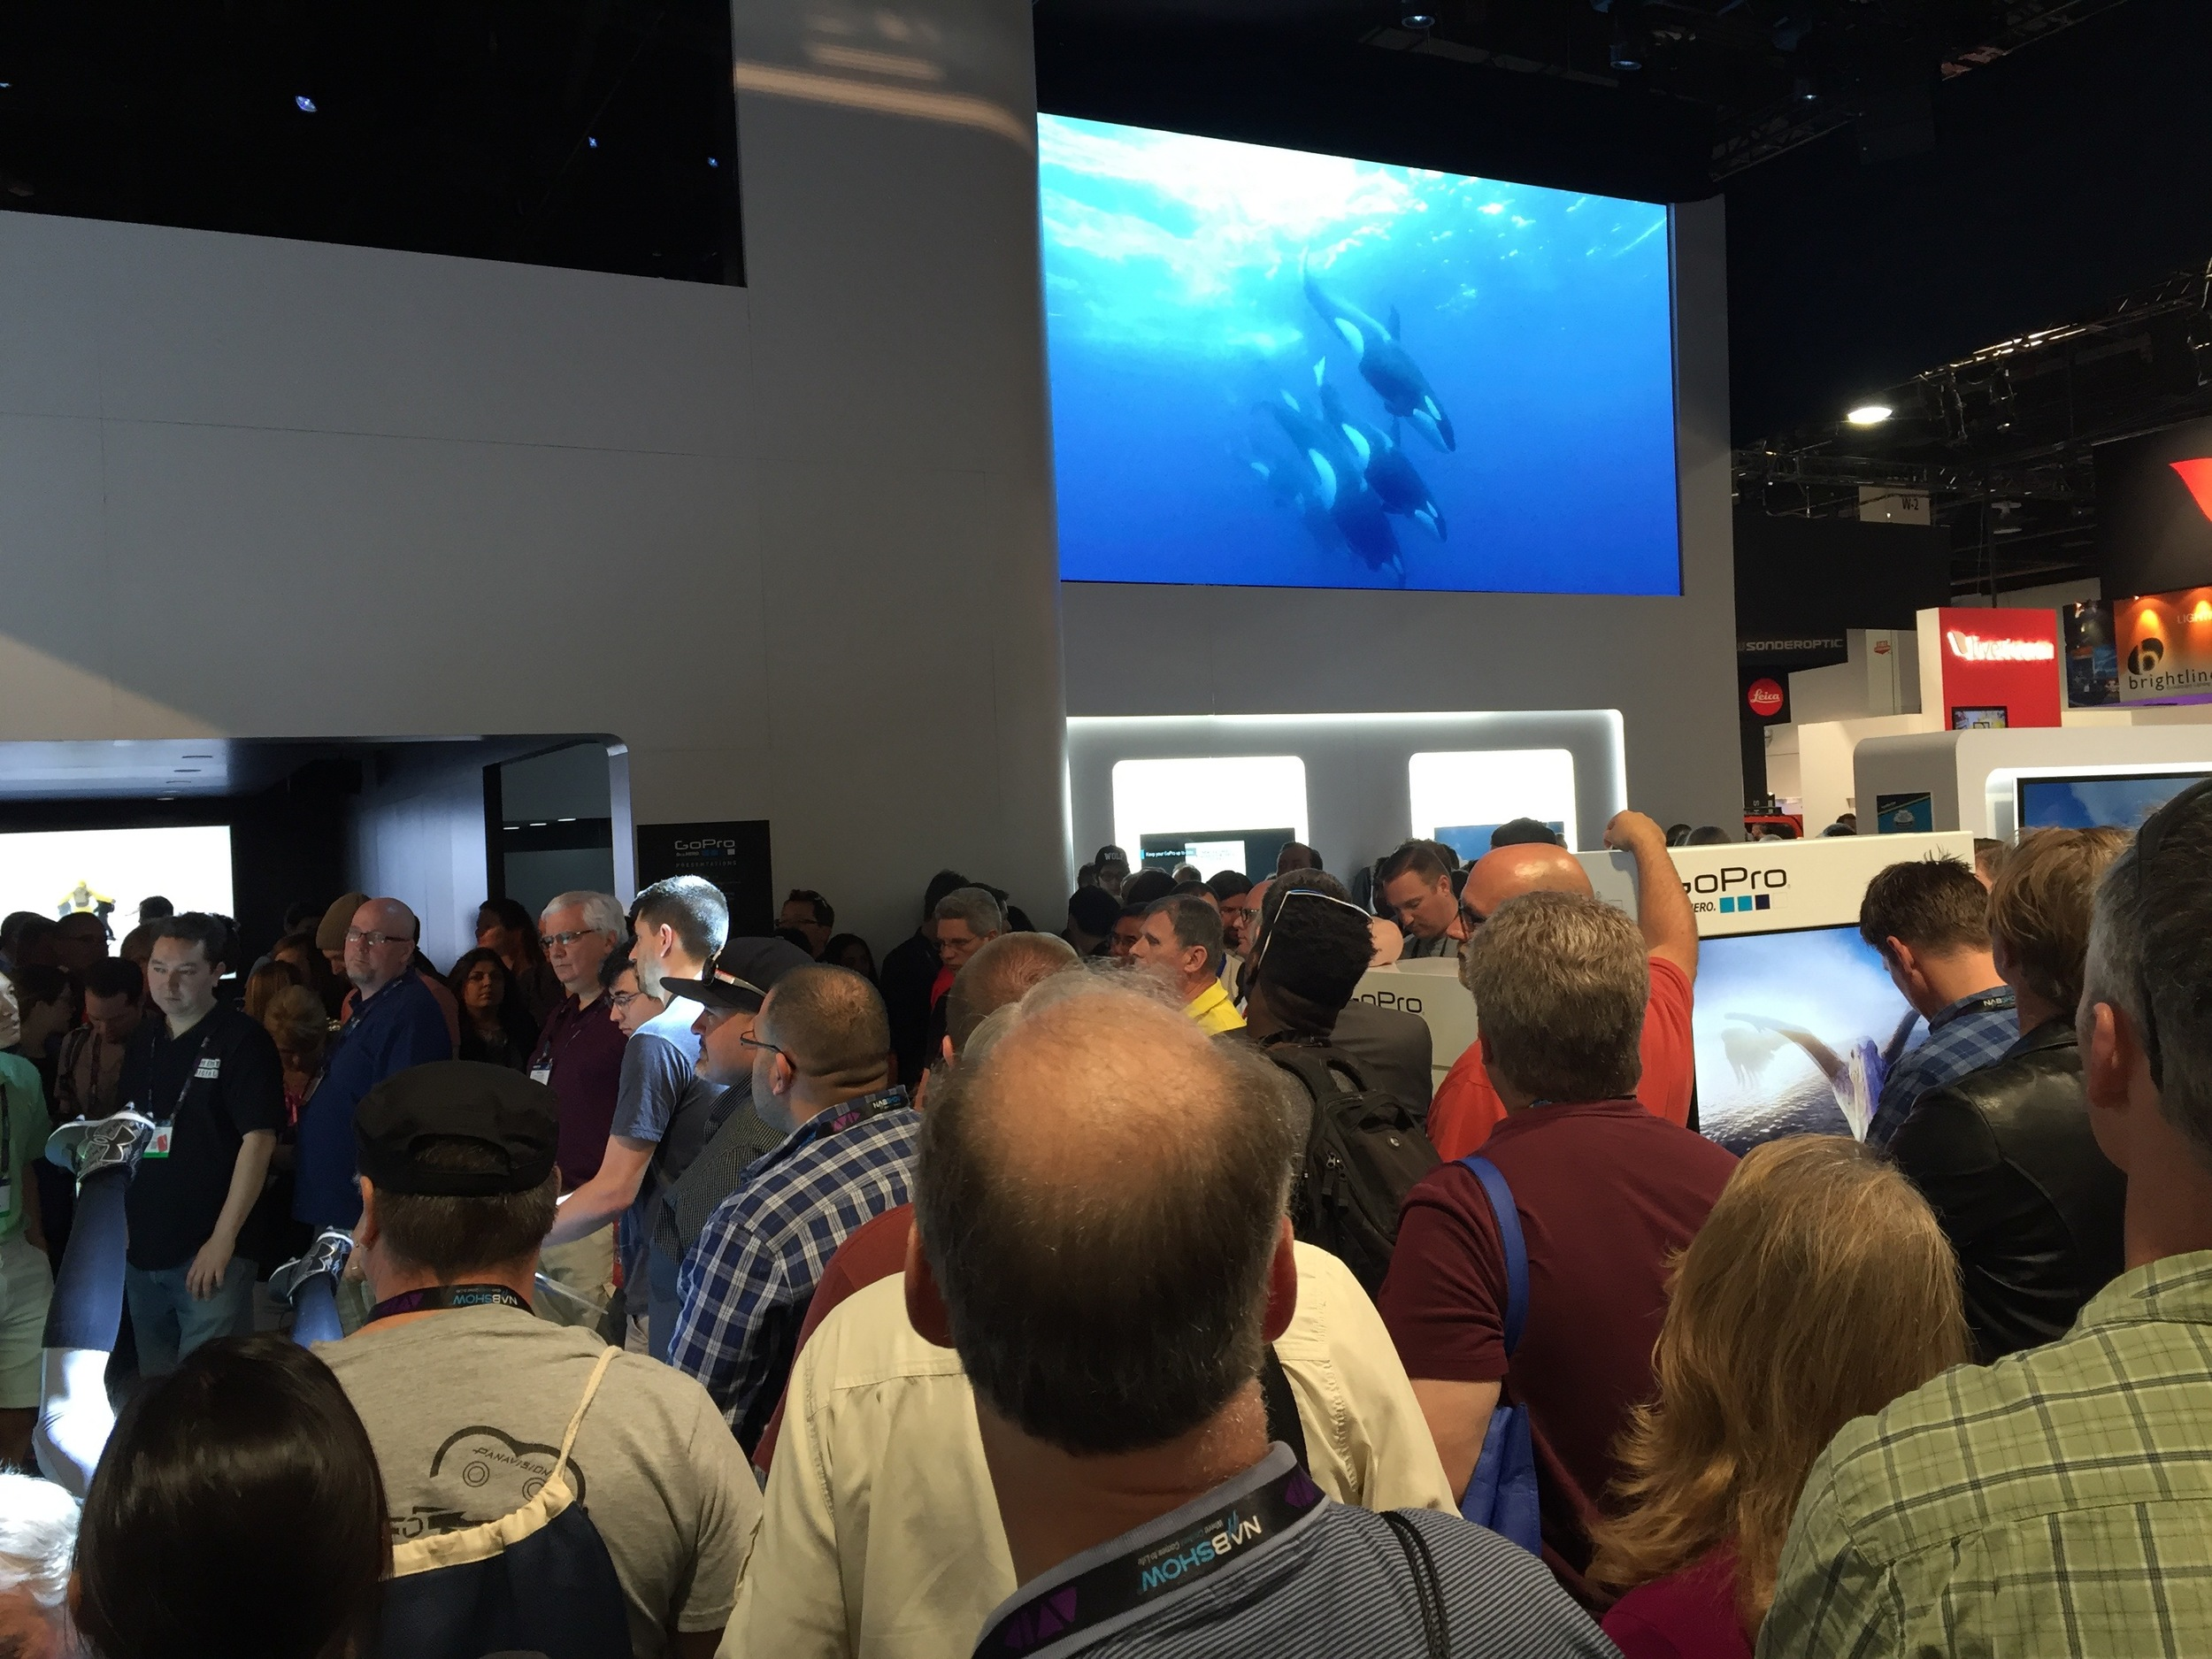 Crowds pile in as GoPro gets ready to raffle off free giveaways.